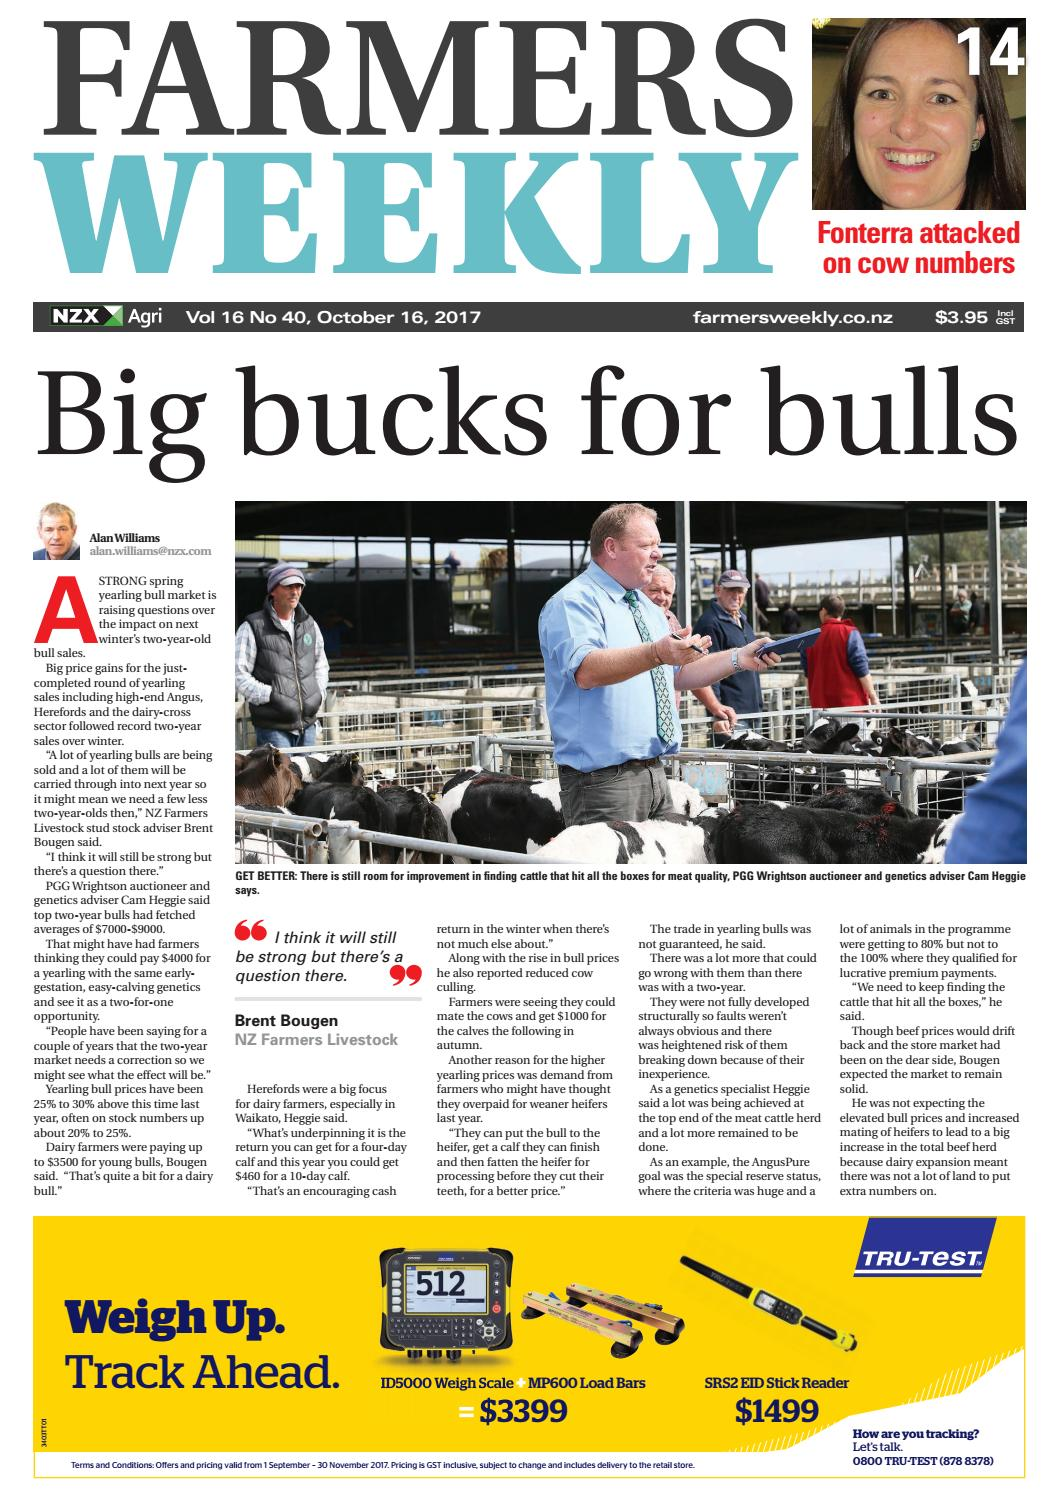 Farmers Weekly Nz October 16 2017 By Farmers Weekly Nz Issuu